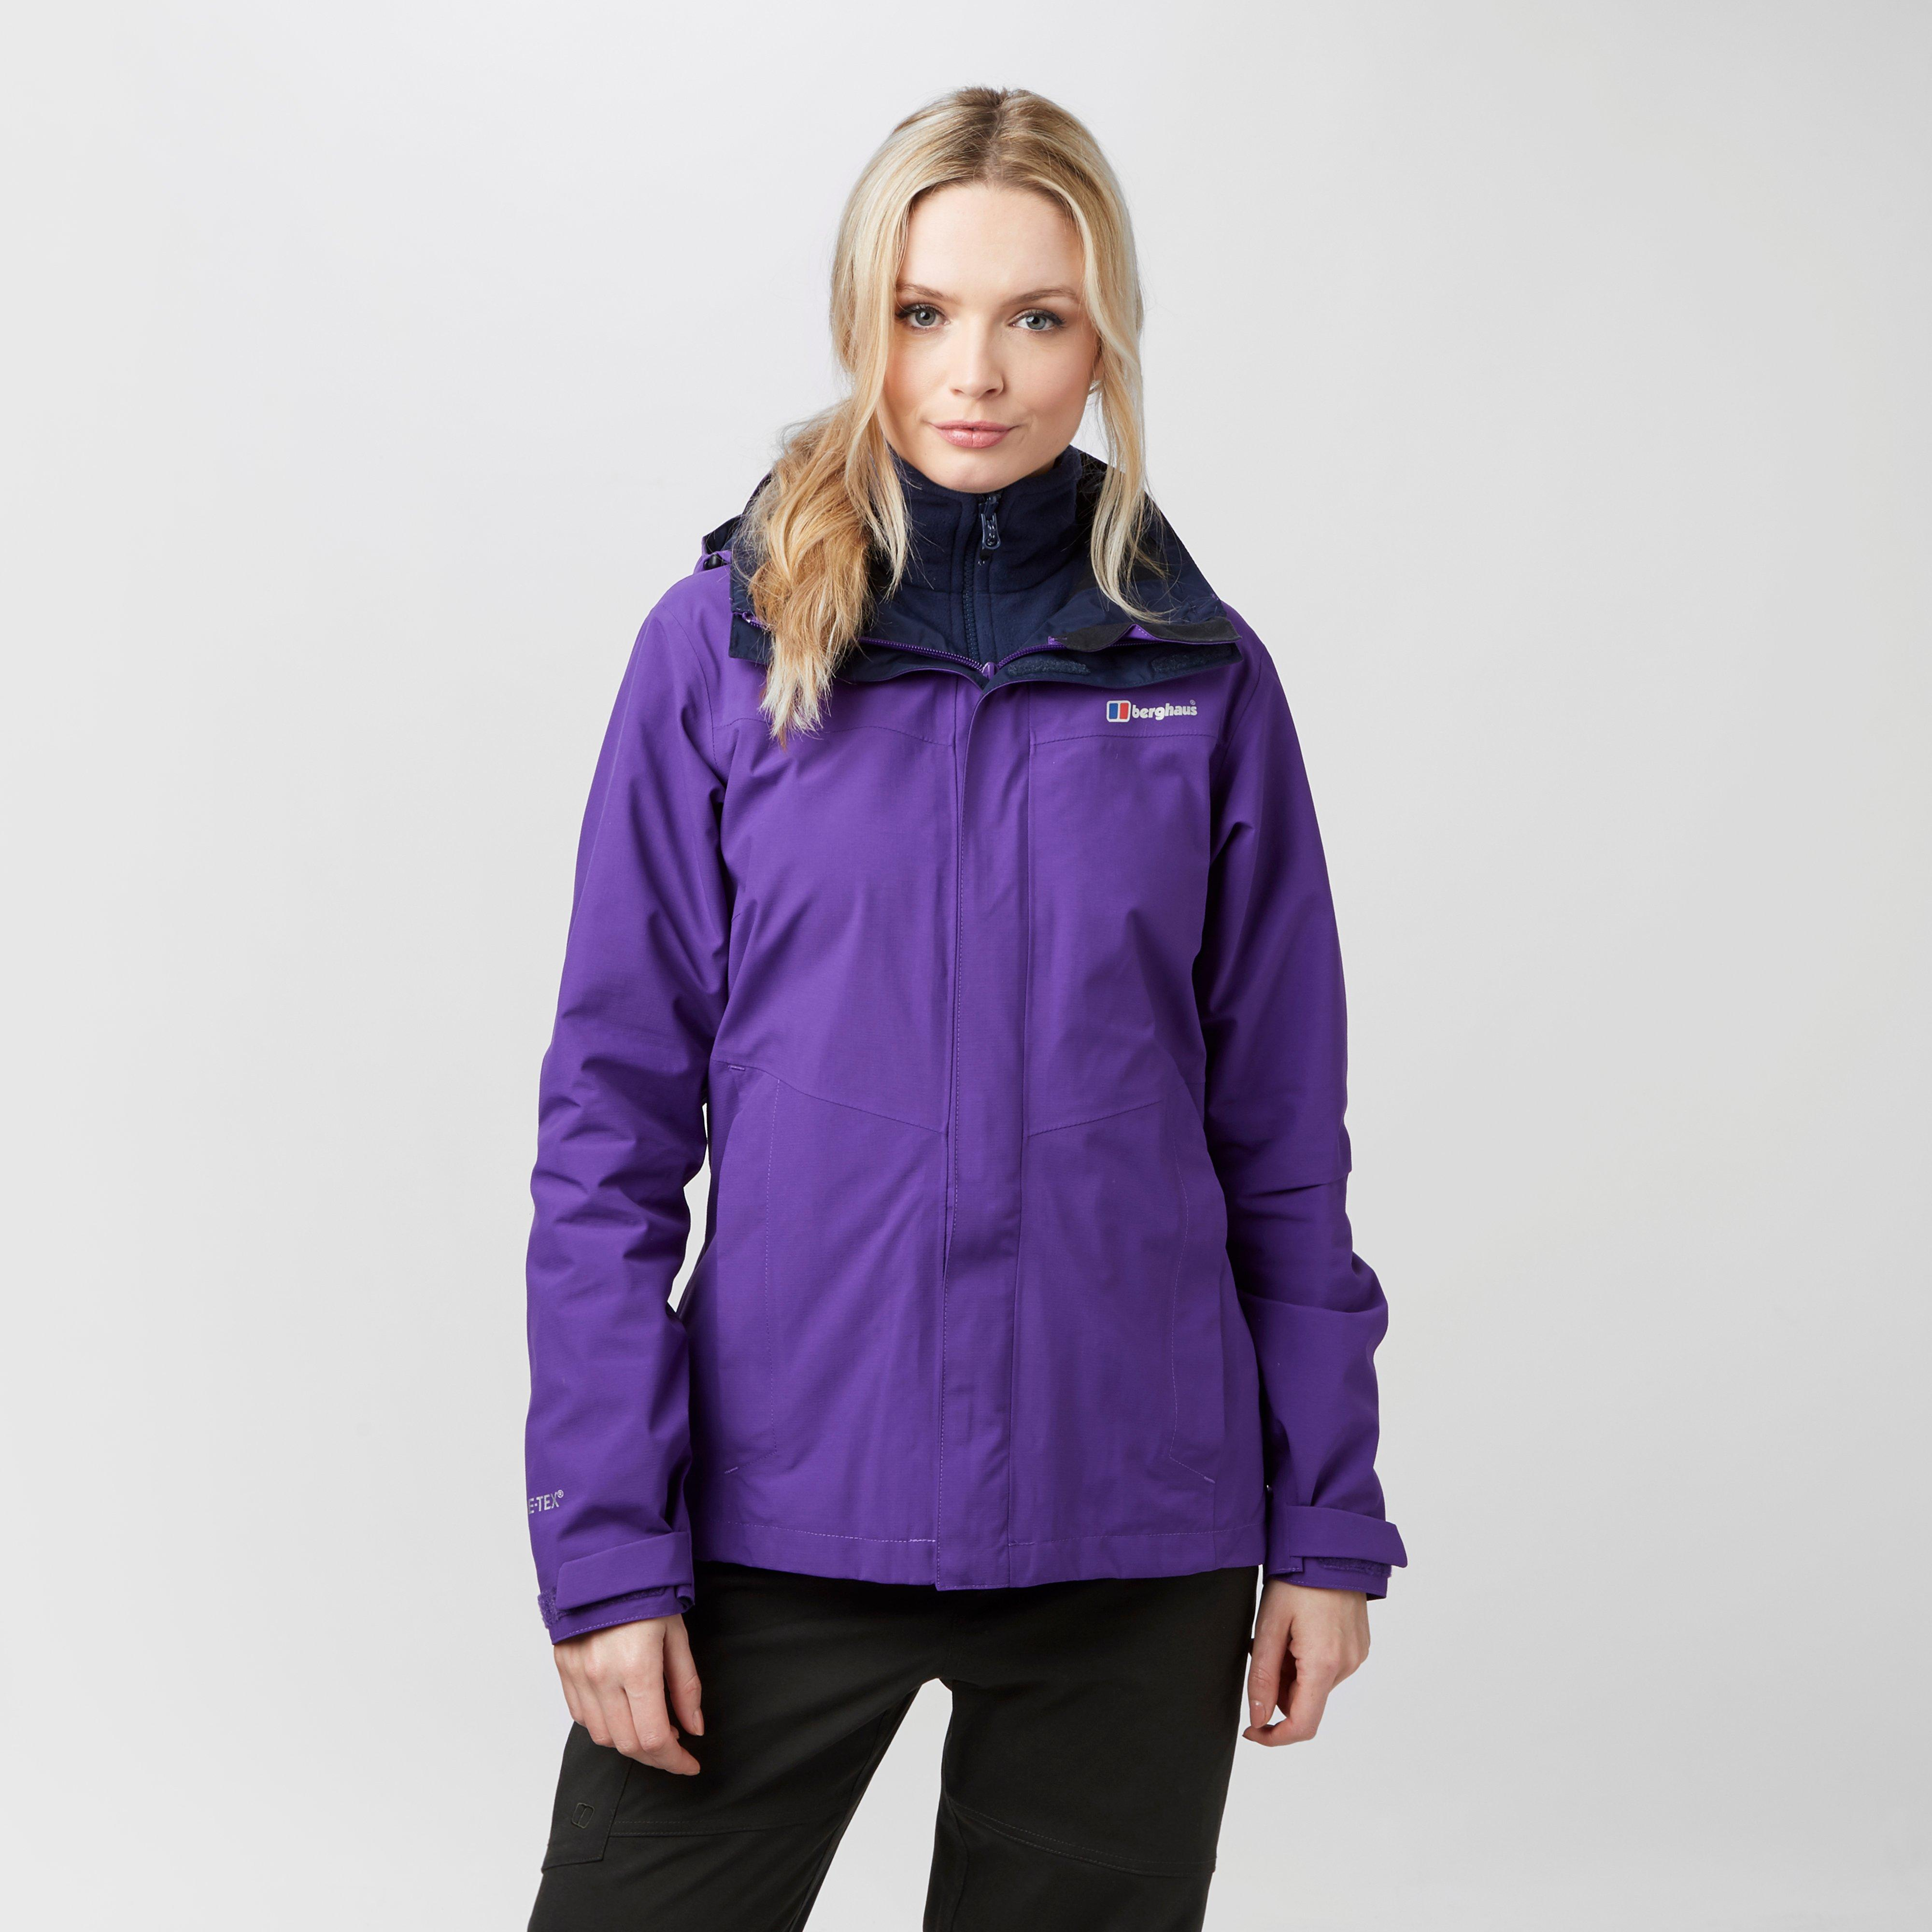 Buy berghaus jacket